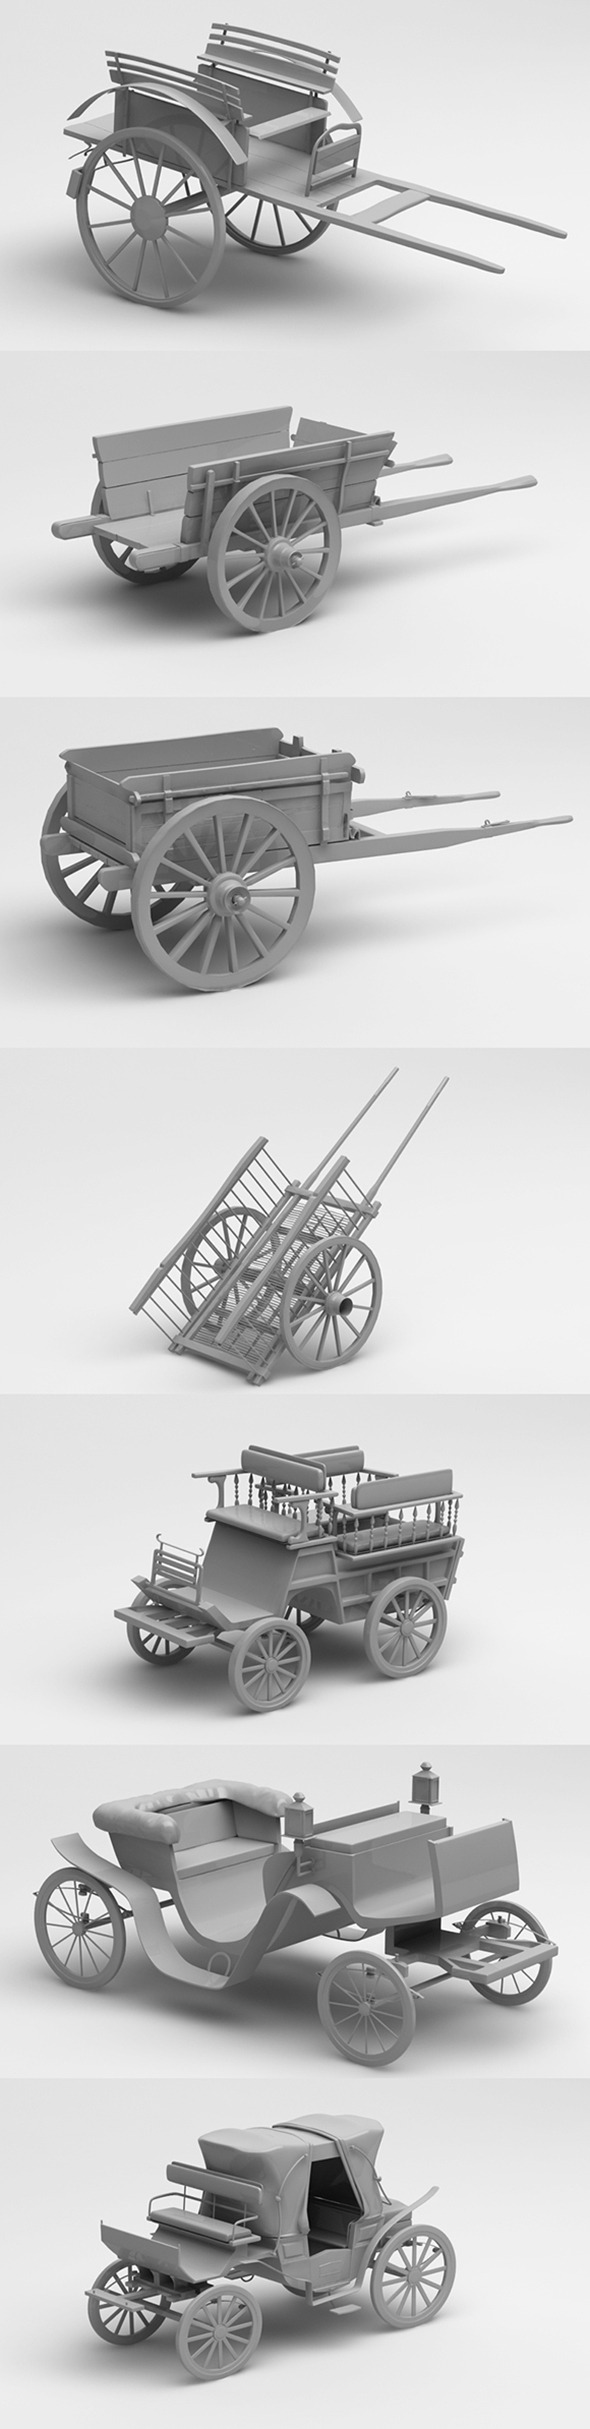 3D old cars and chariots